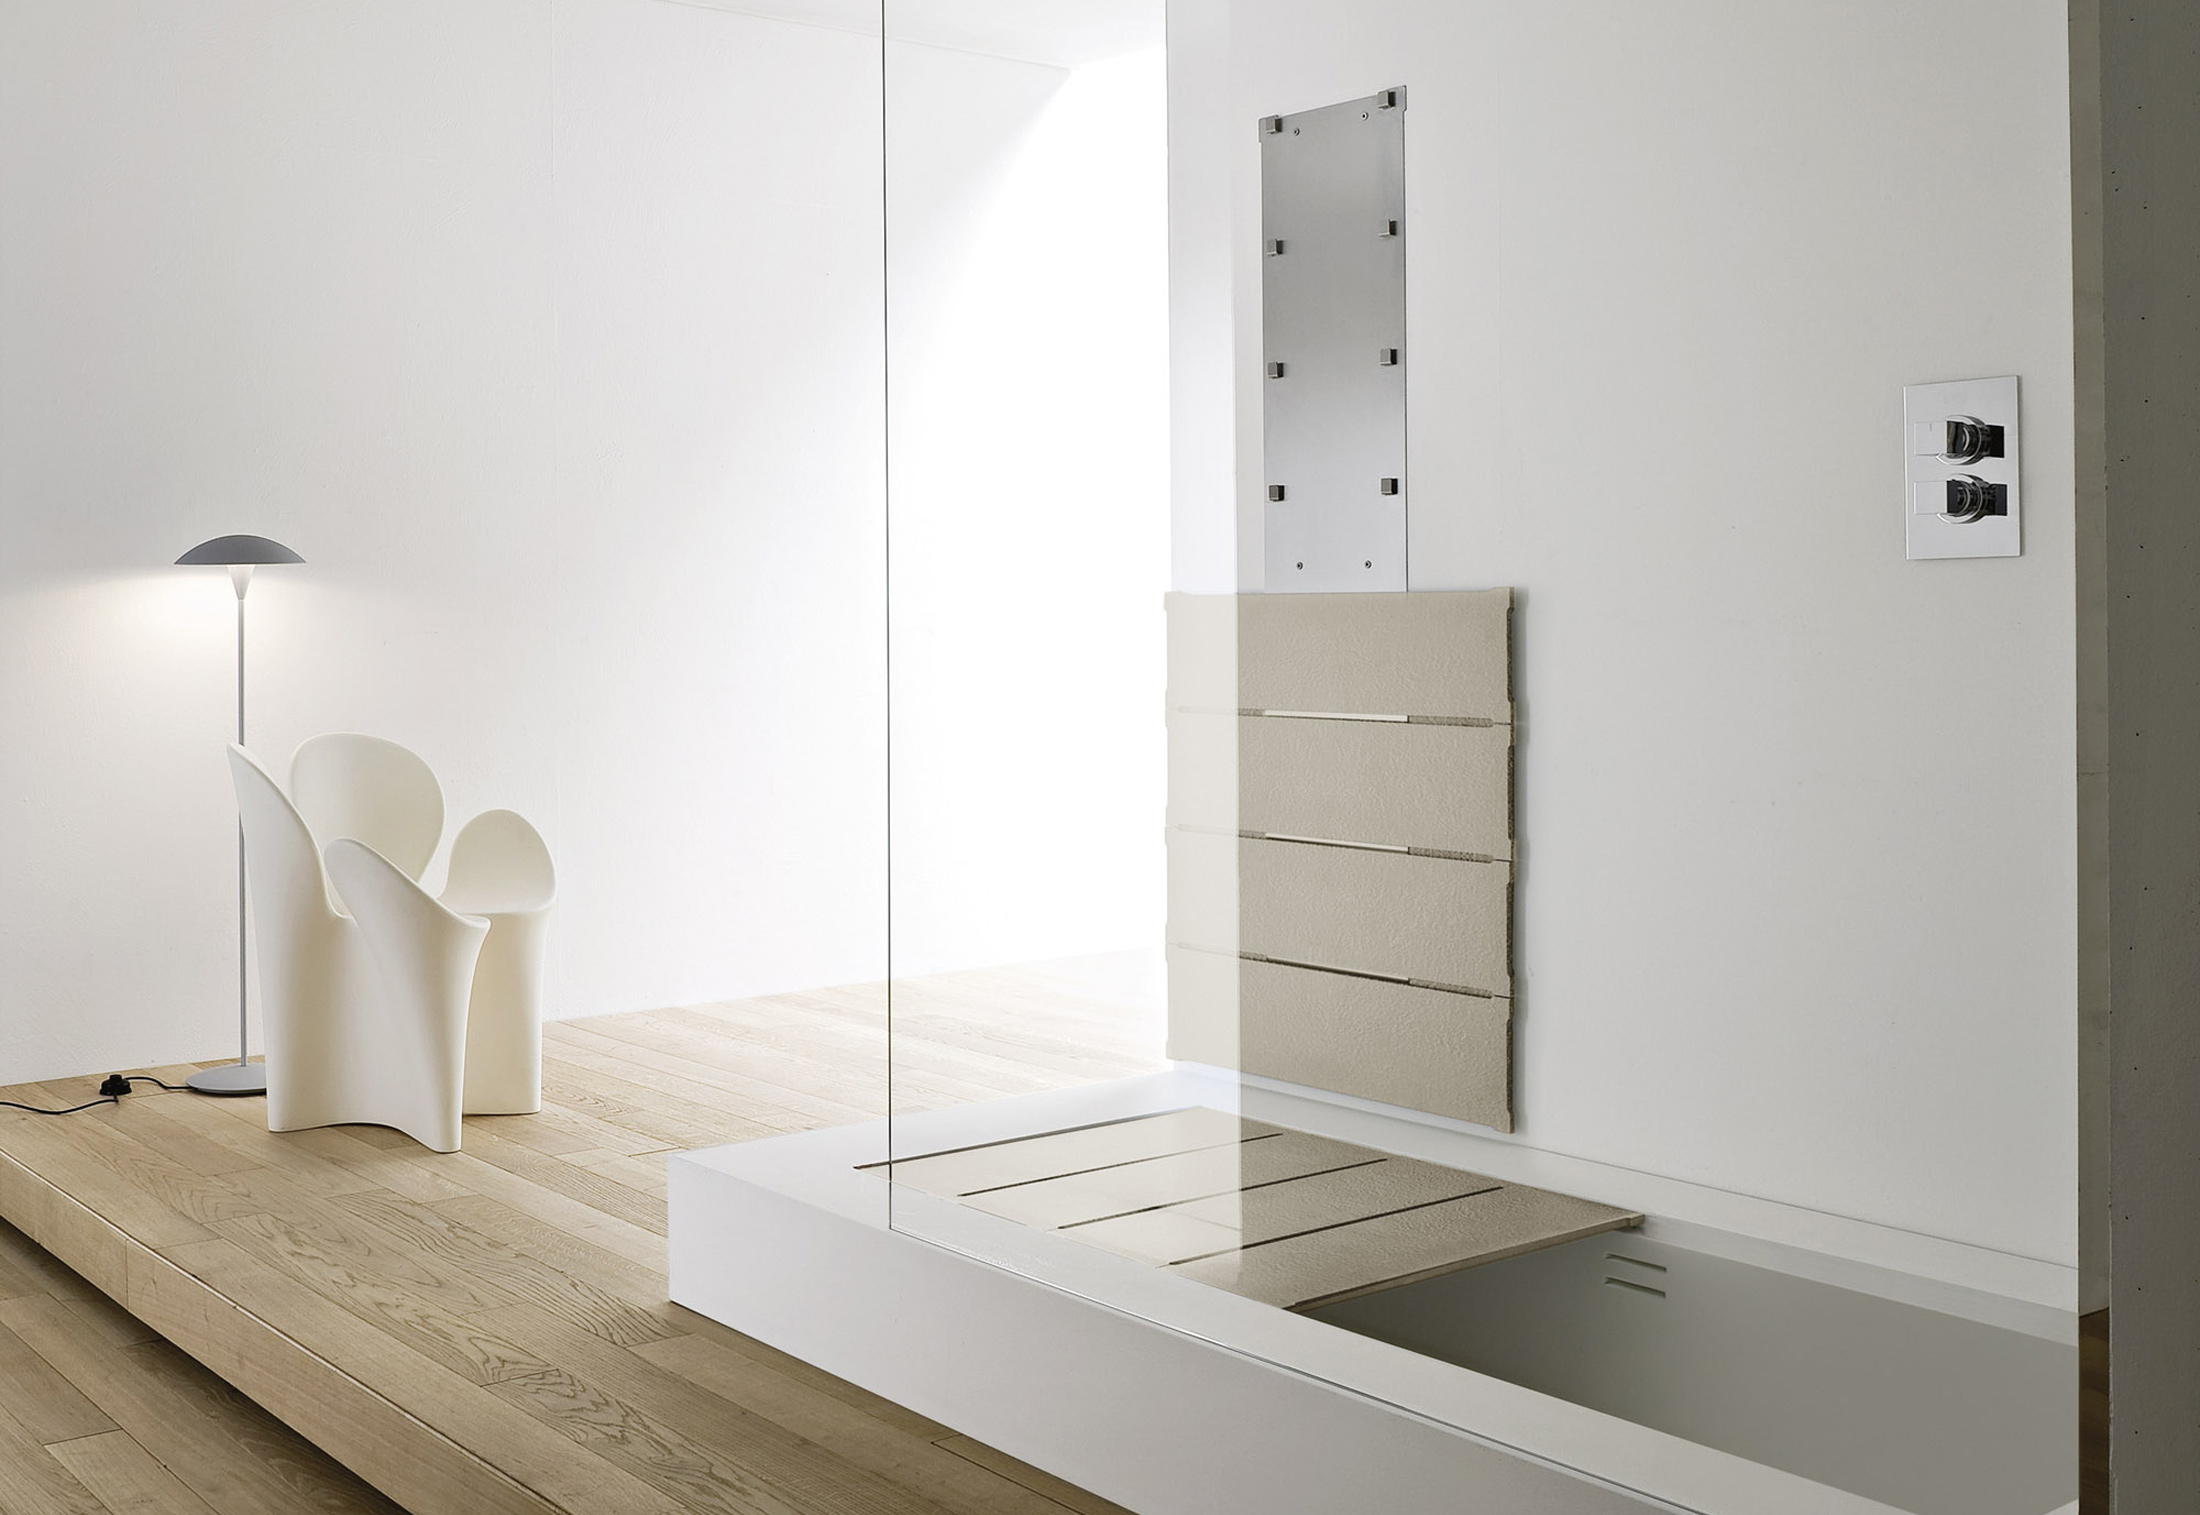 Unico bathtub shower system by Rexa Design | STYLEPARK